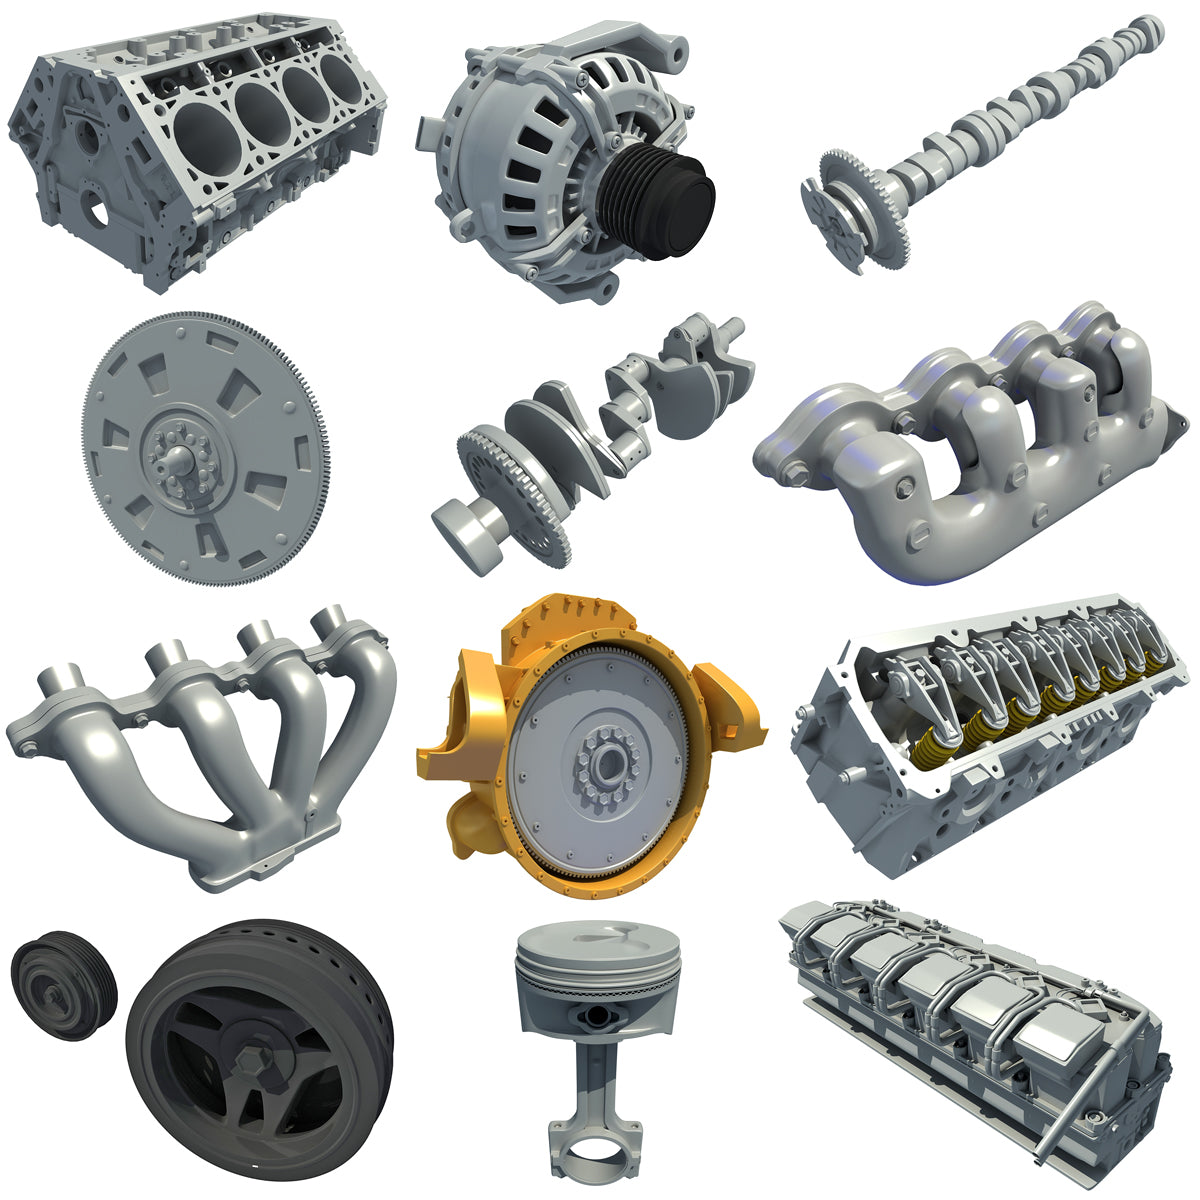 3D Engine Parts Models